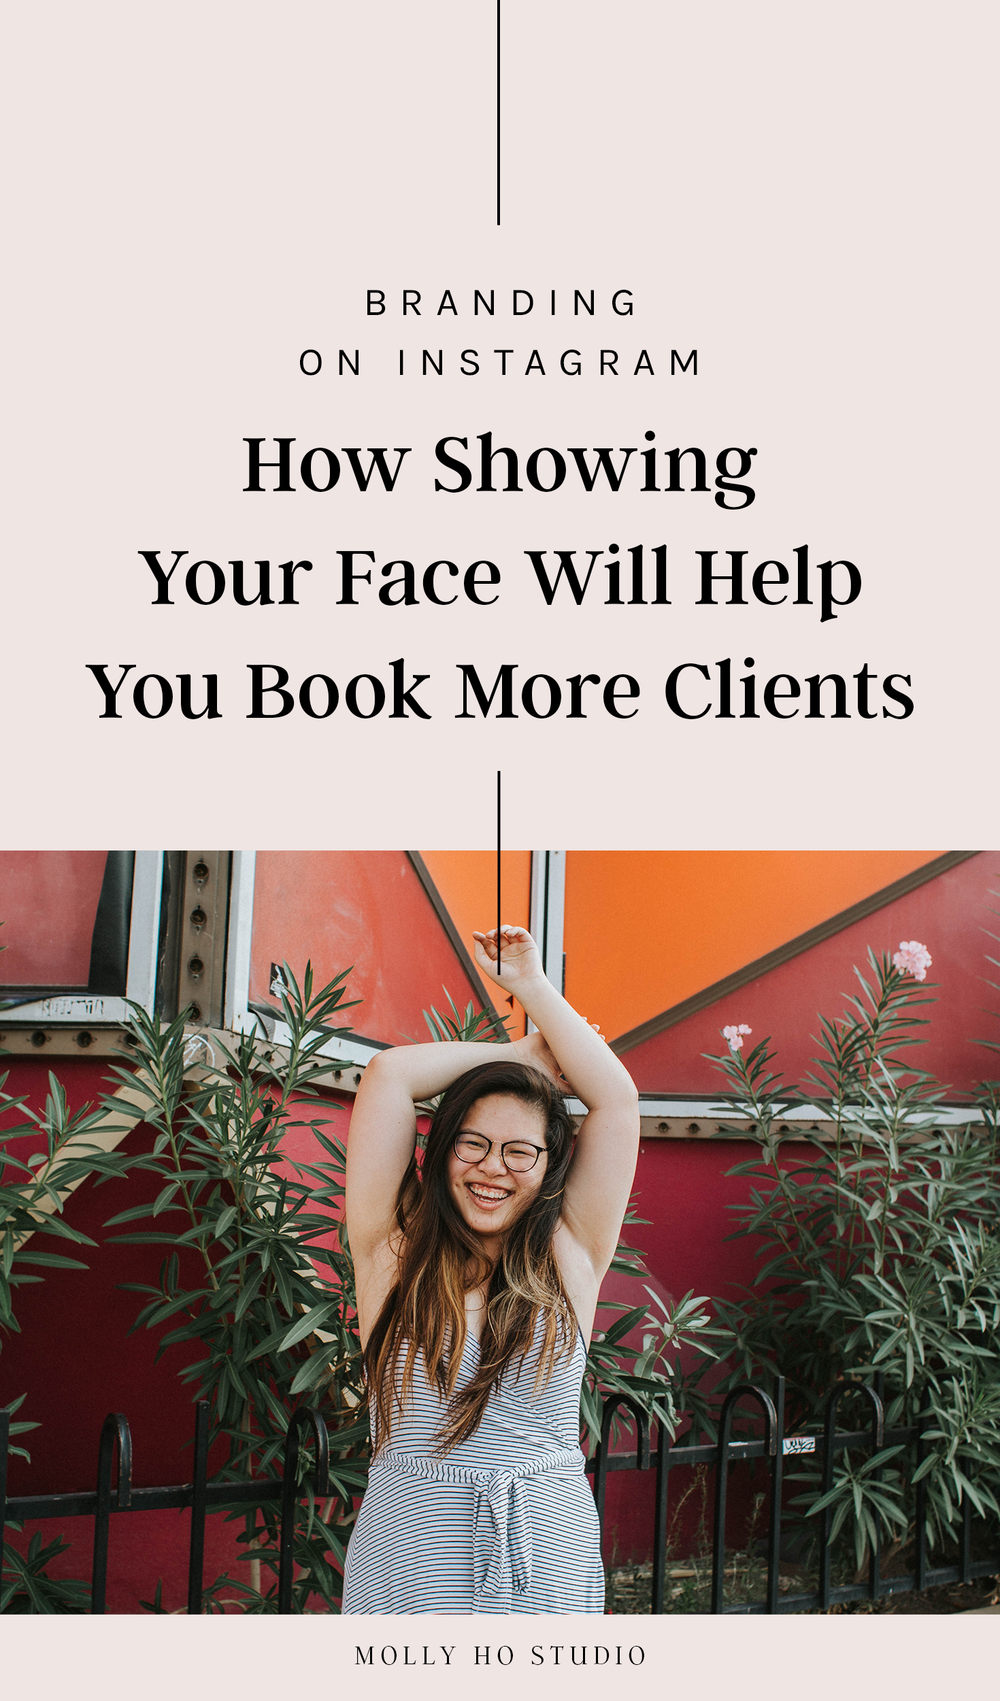 Branding On Instagram: How Showing Your Face Will Help You Book More Clients | How To Get Followers On Instagram | Grow Your Instagram Account Organically | Instagram Tips For Creative Entrepreneurs | Instagram Branding Strategy | Increase Your Increase Engagement | Social Media Tips For Small Businesses and Personal Brands | Molly Ho Studio